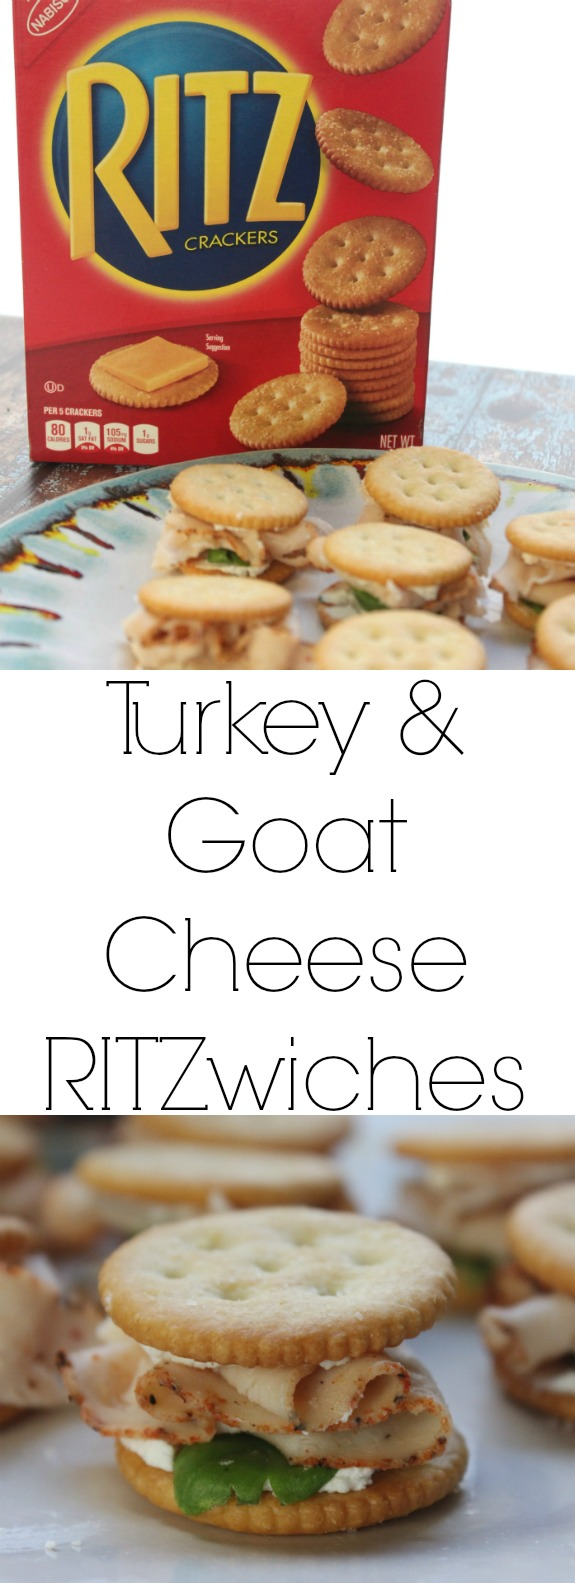 Turkey and Goat Cheese RITZwiches